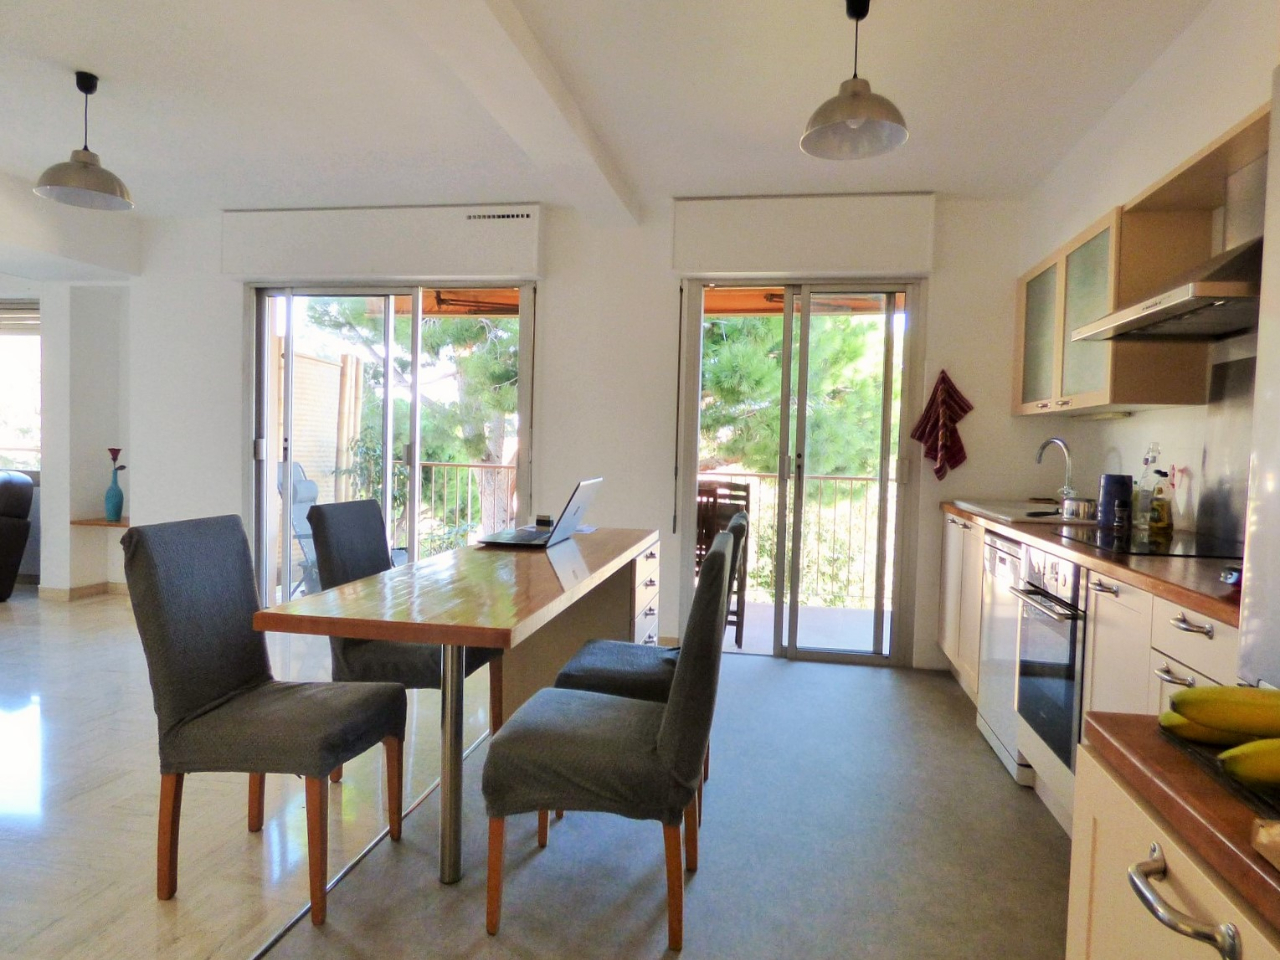 Appartement en vente à SAINT LAURENT DU VAR